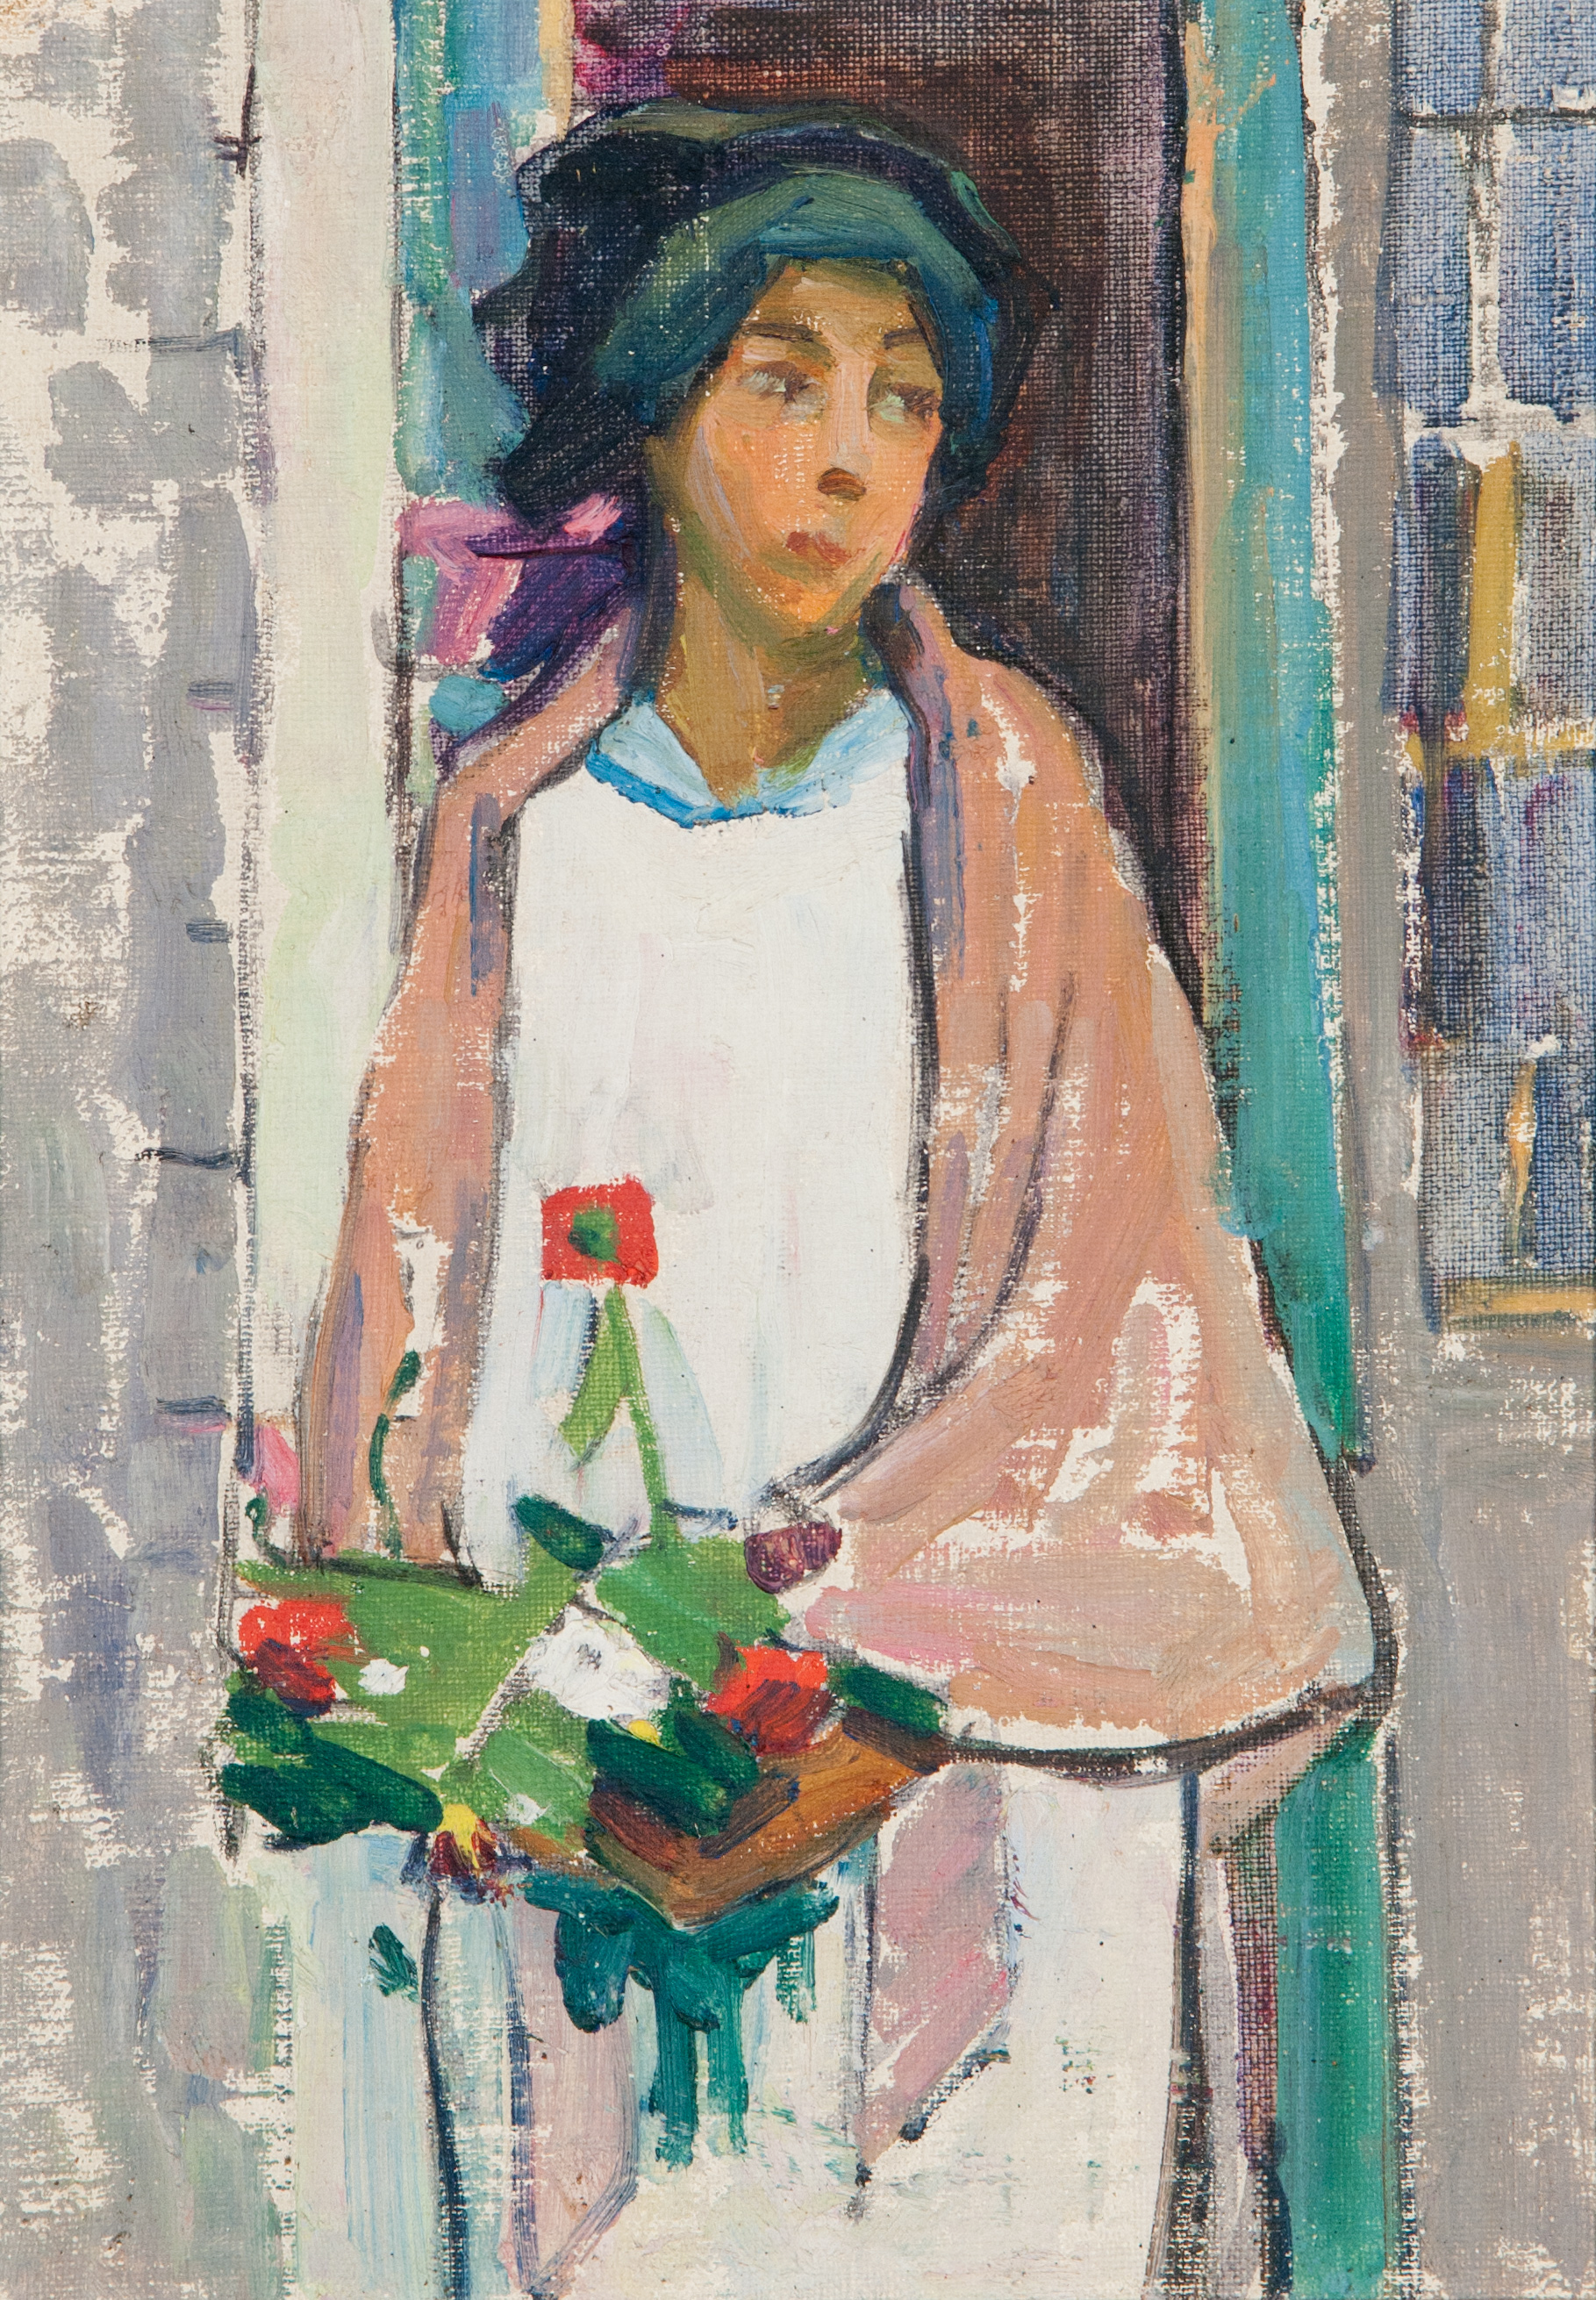 Woman with Flowers (Oil Painting) by Edith Lake Wilkinson